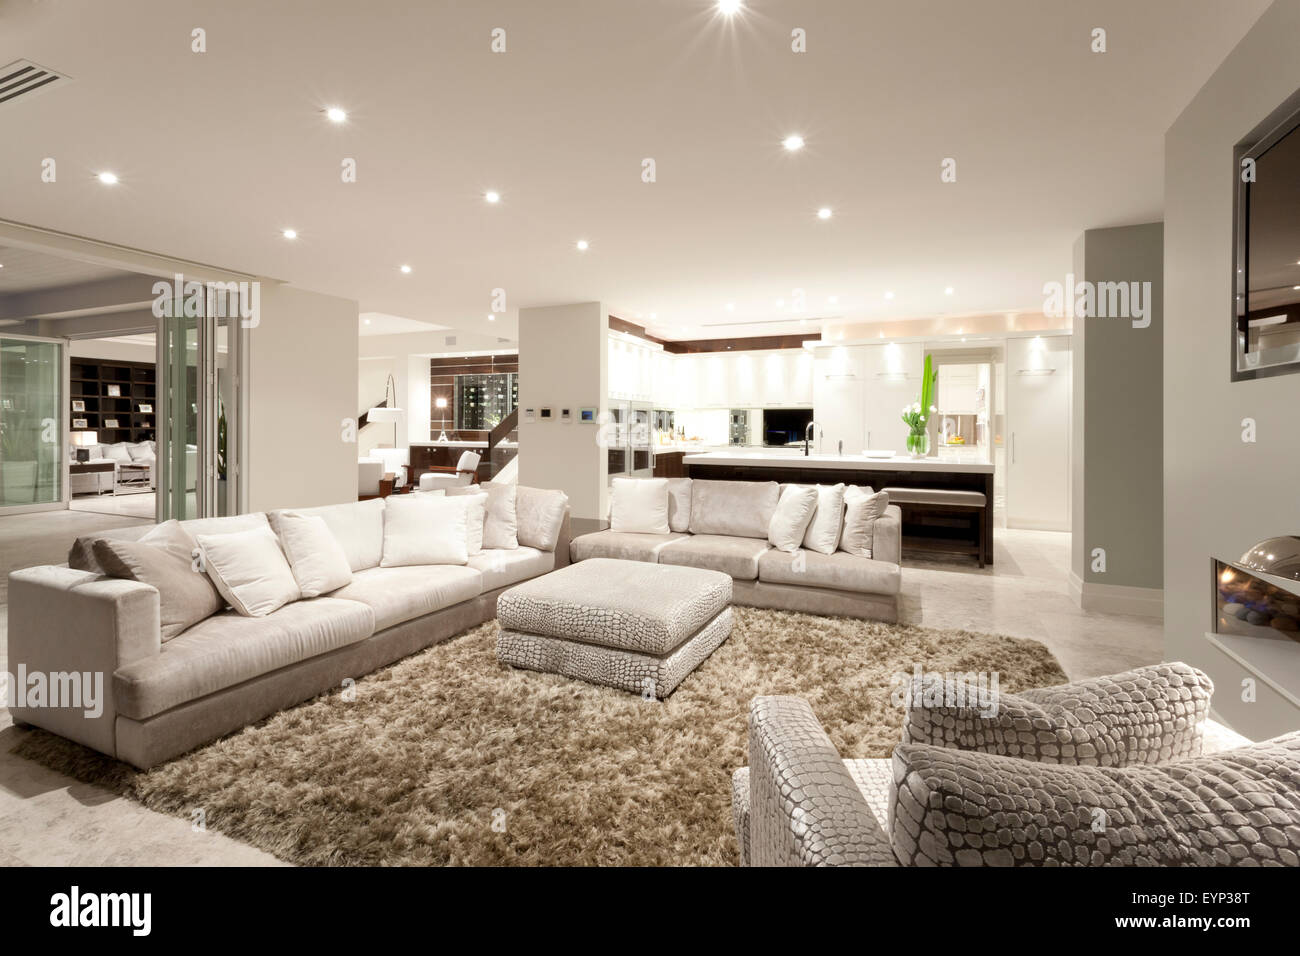 Cozy living room with two spacious sofas, an armchair and a ...